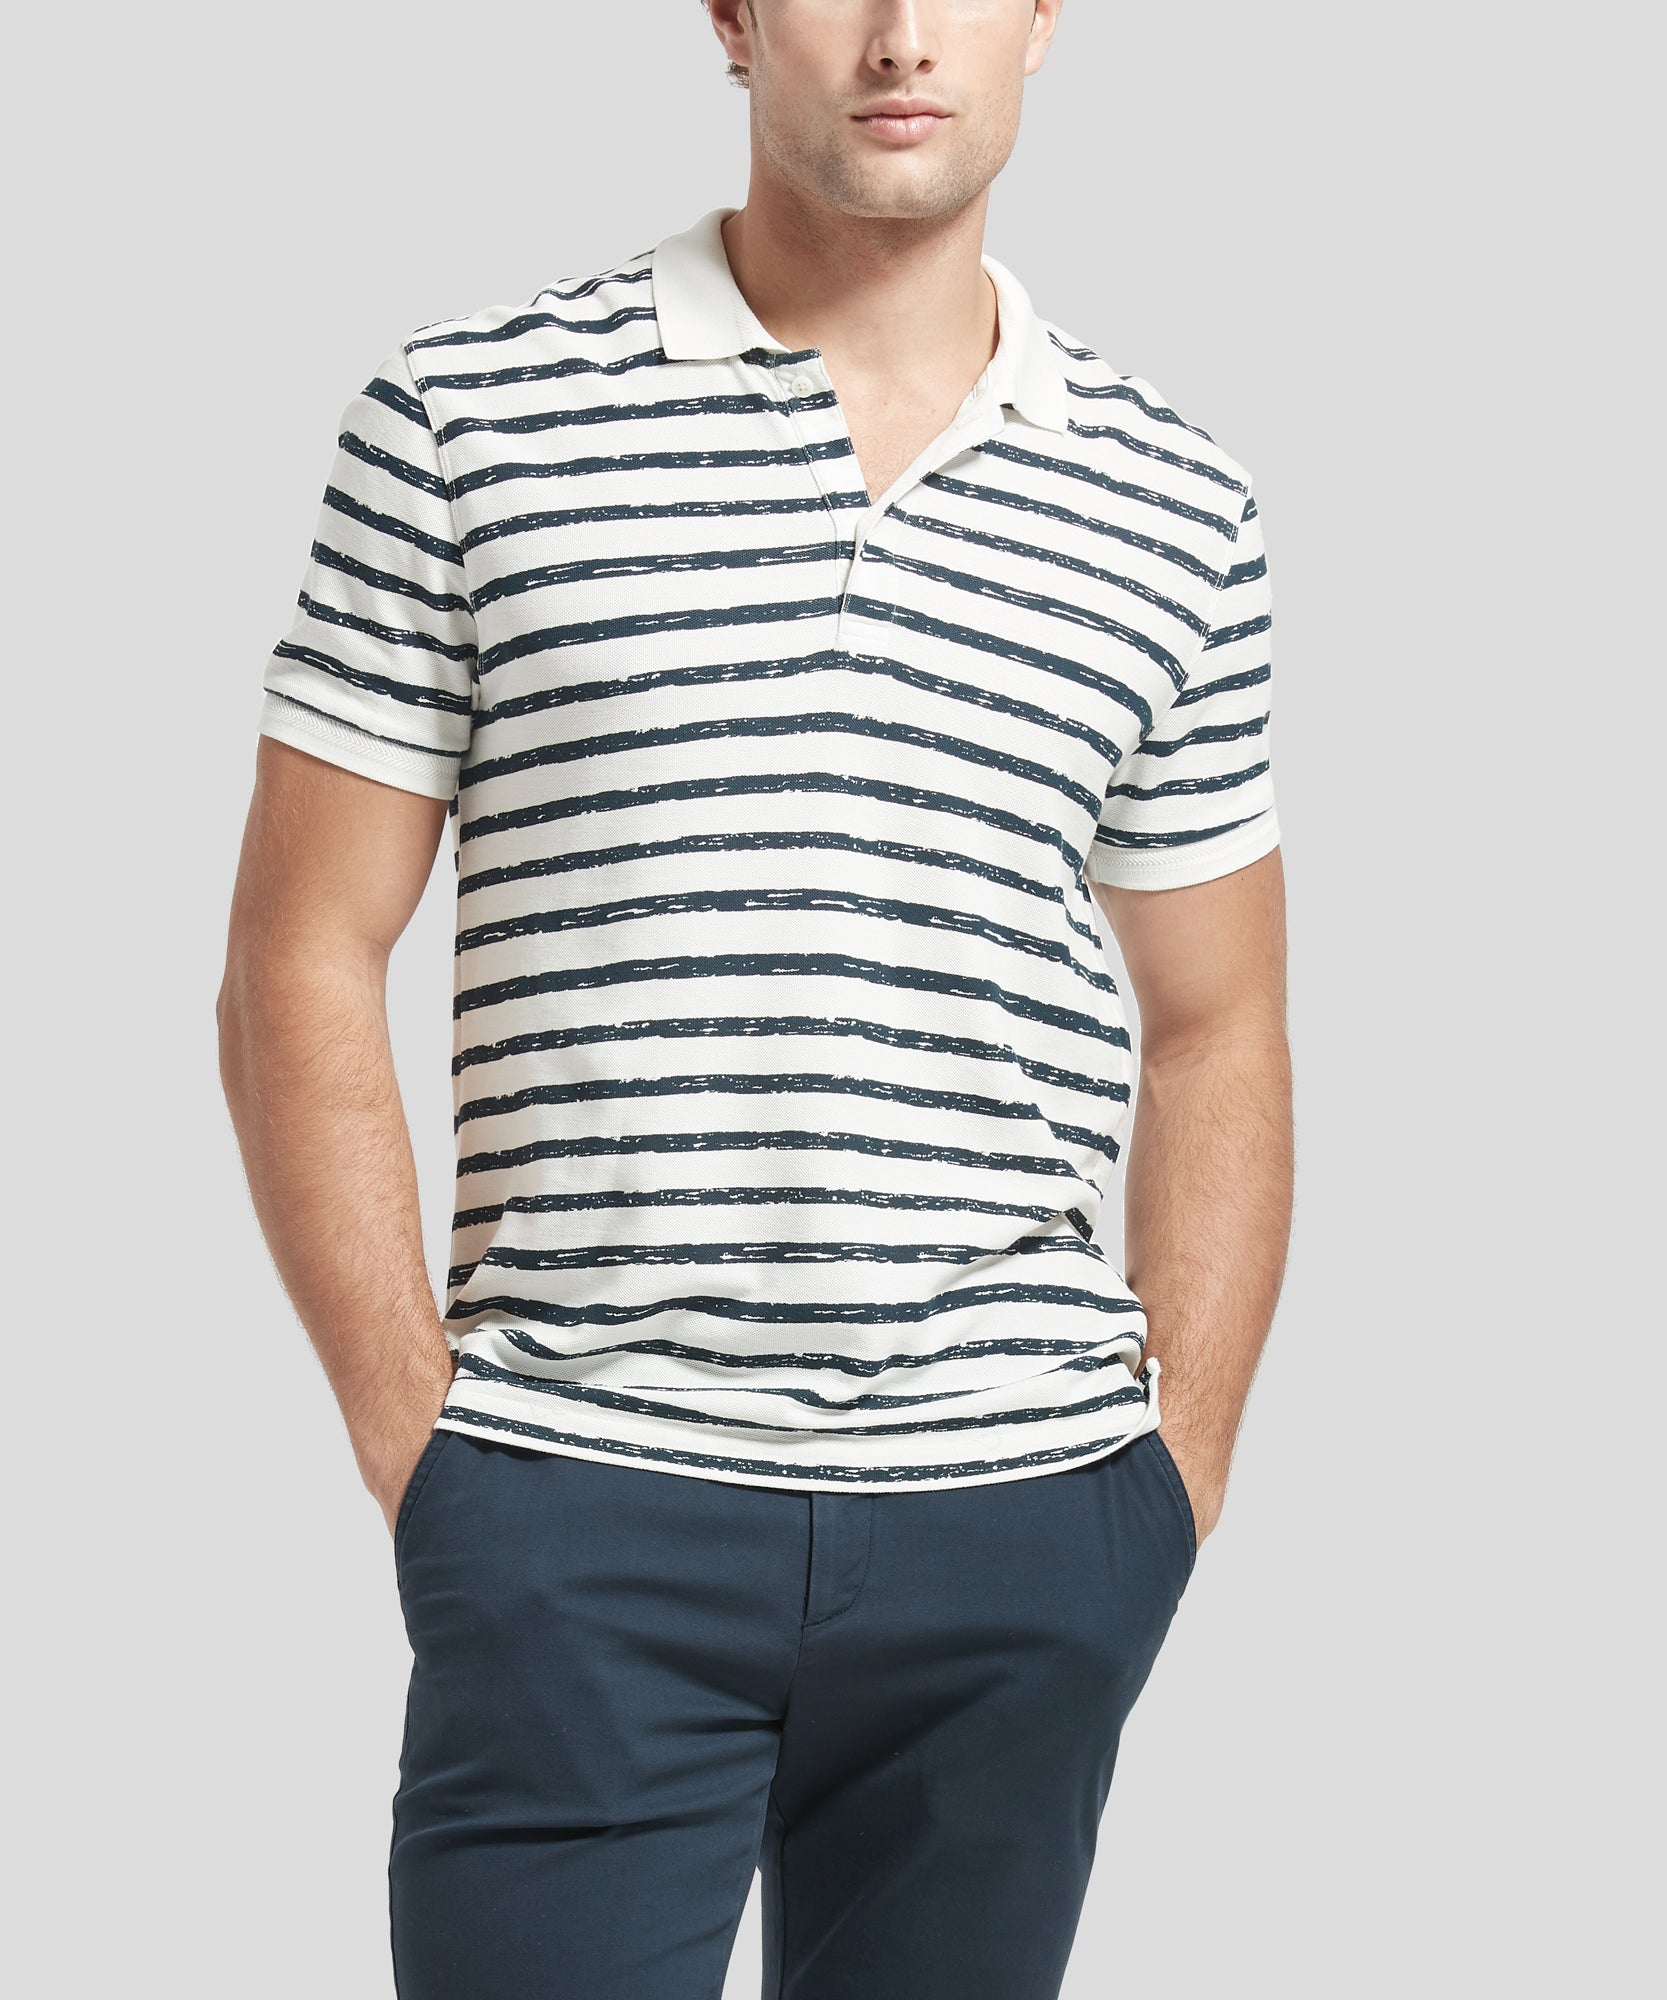 ATM Striped Cotton Pique Polo